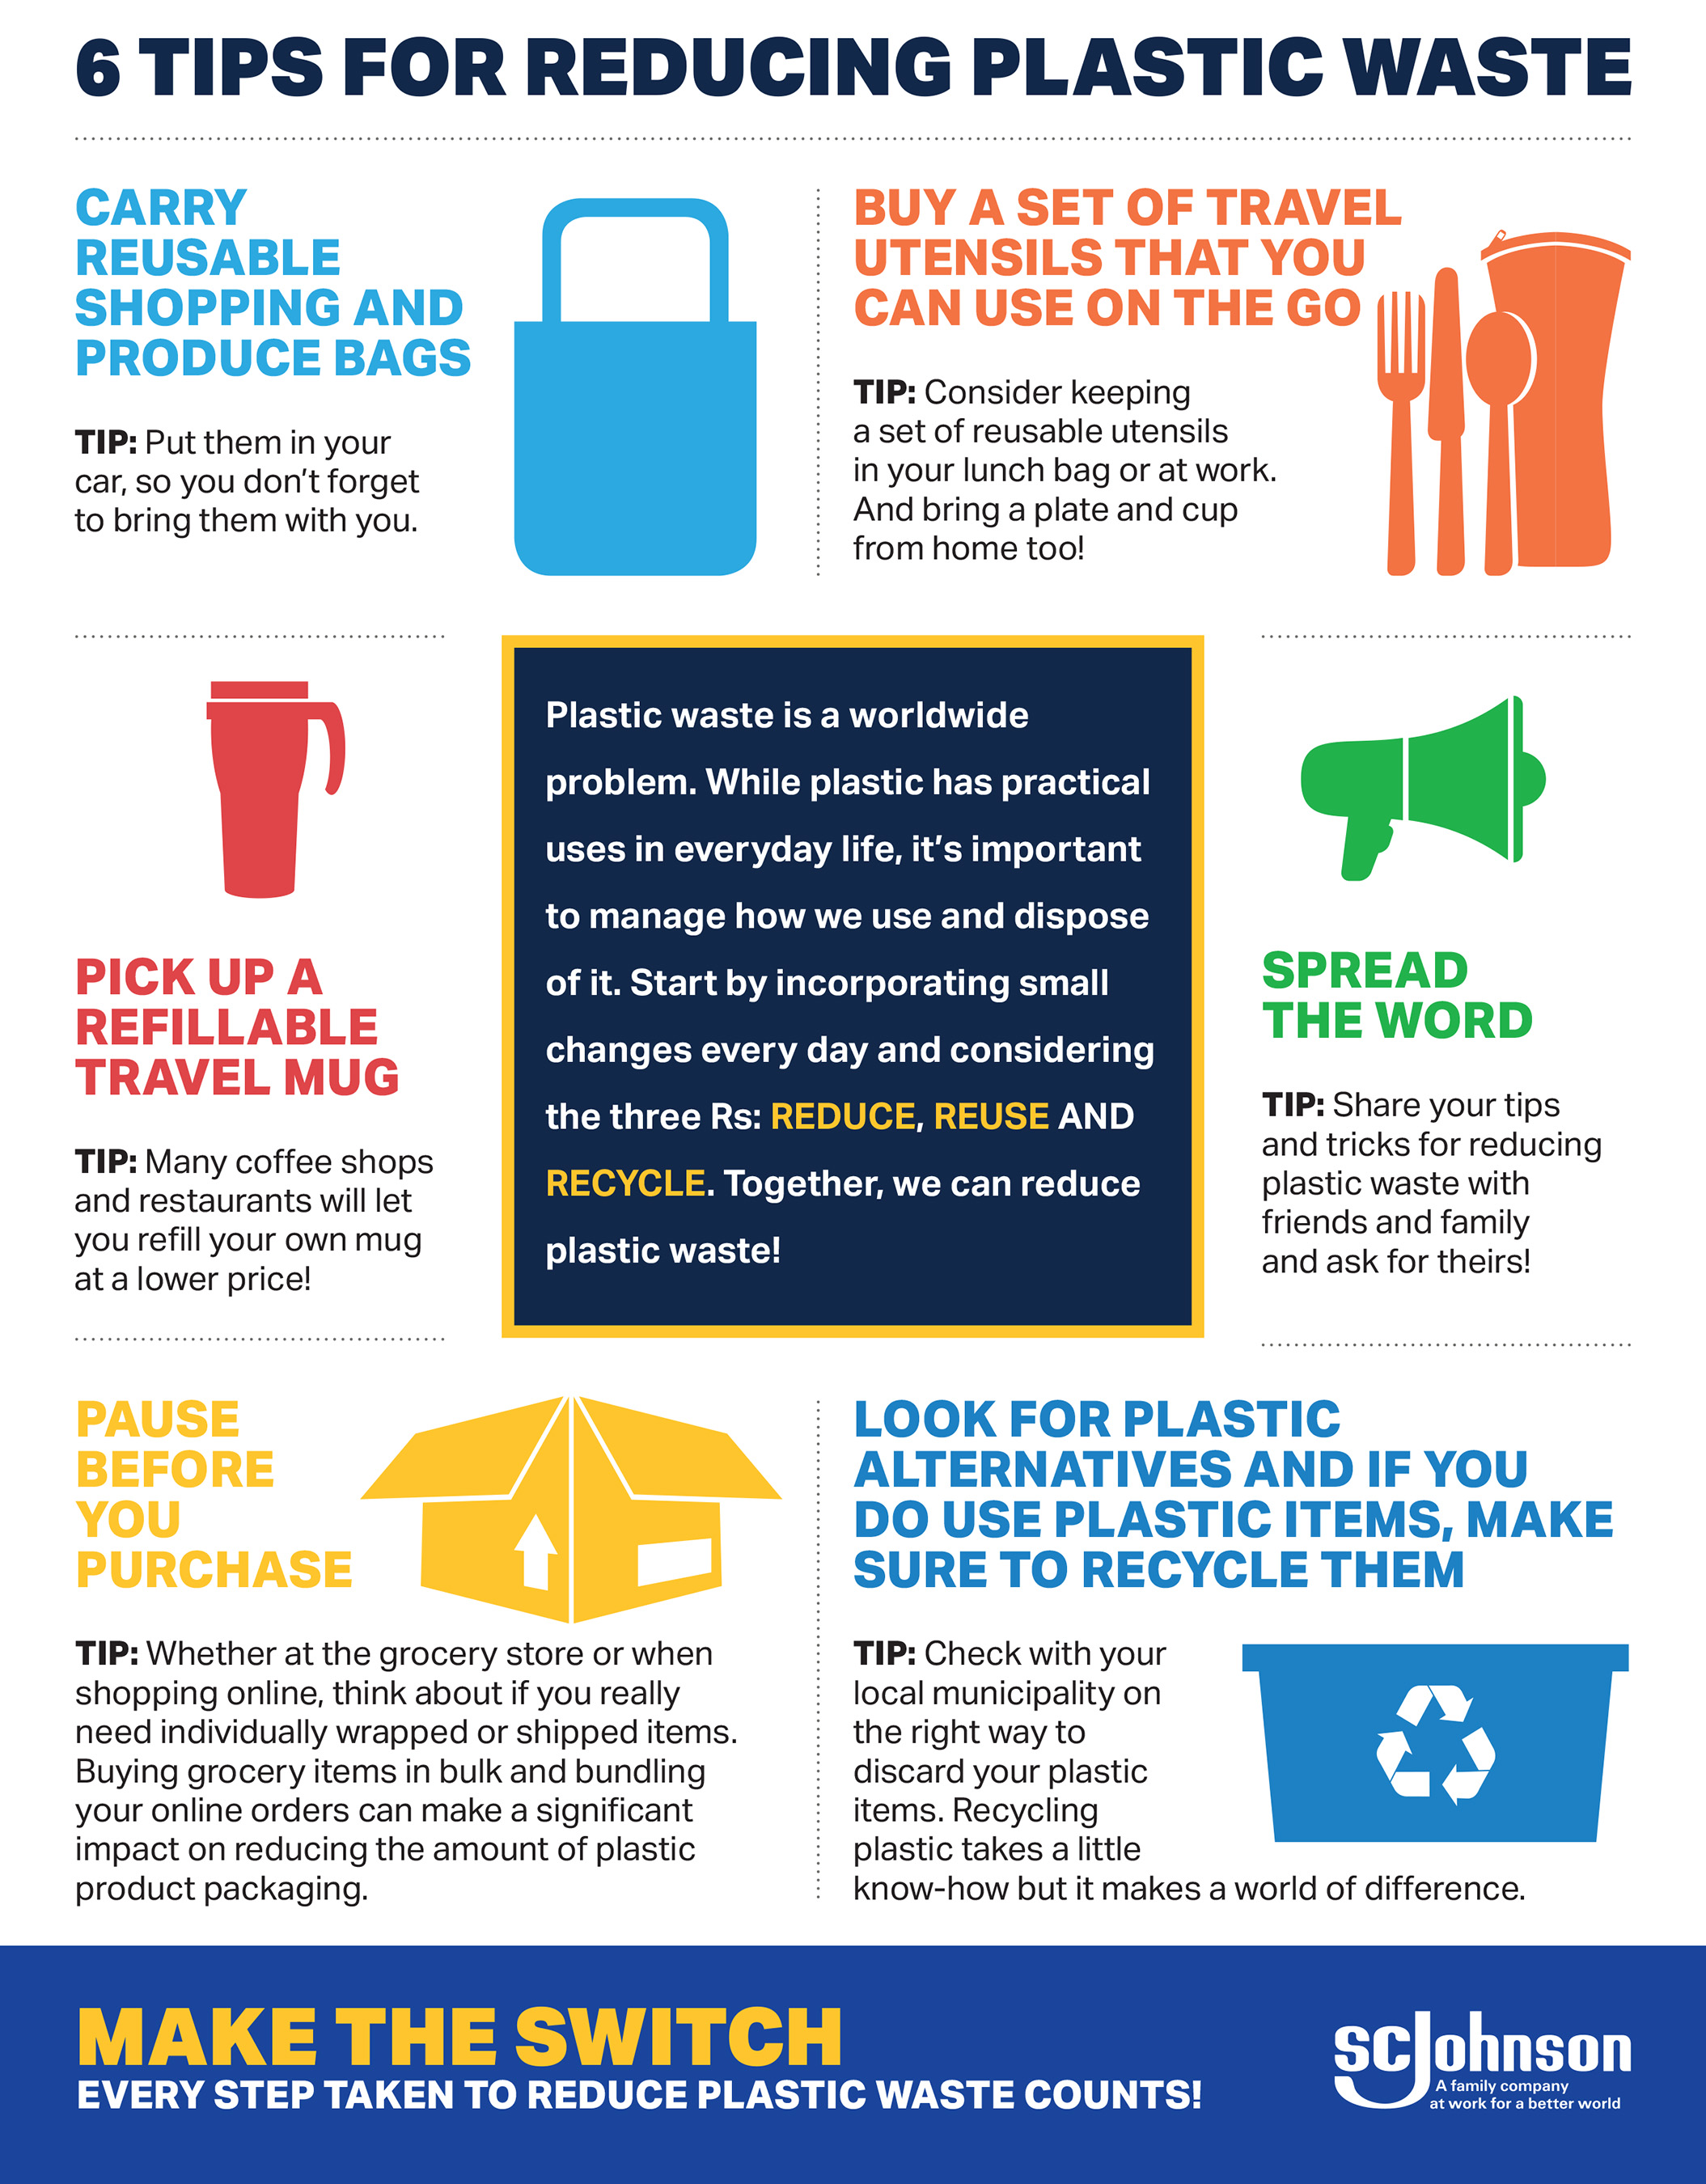 Learn simple steps for reducing plastic waste